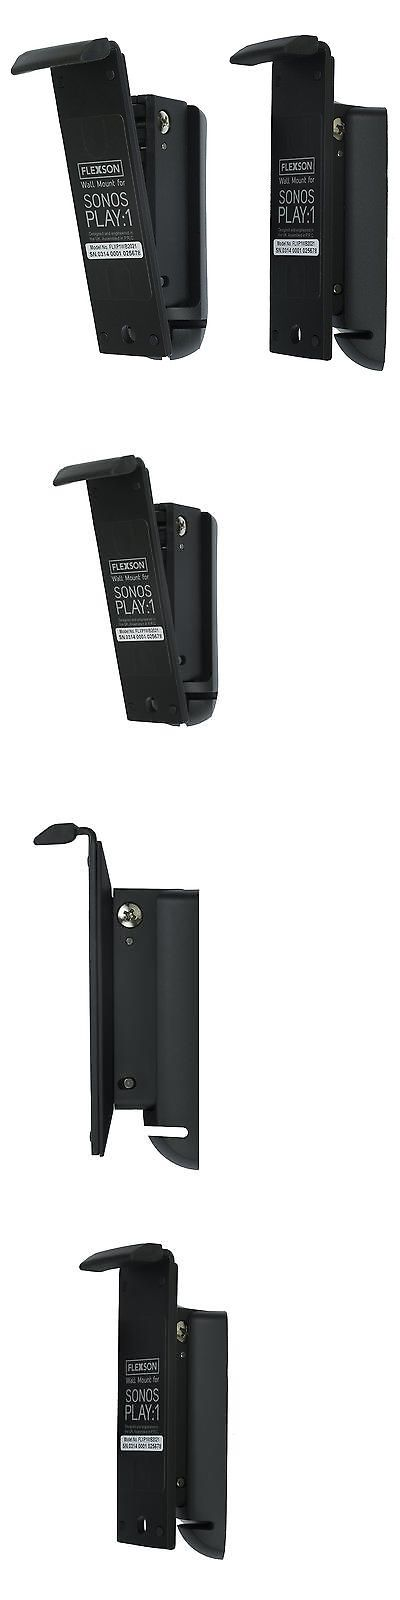 Speaker Mounts and Stands: Flexson Wall Mount For Sonos Play:1 - Pair (Black) -> BUY IT NOW ONLY: $84.99 on eBay!